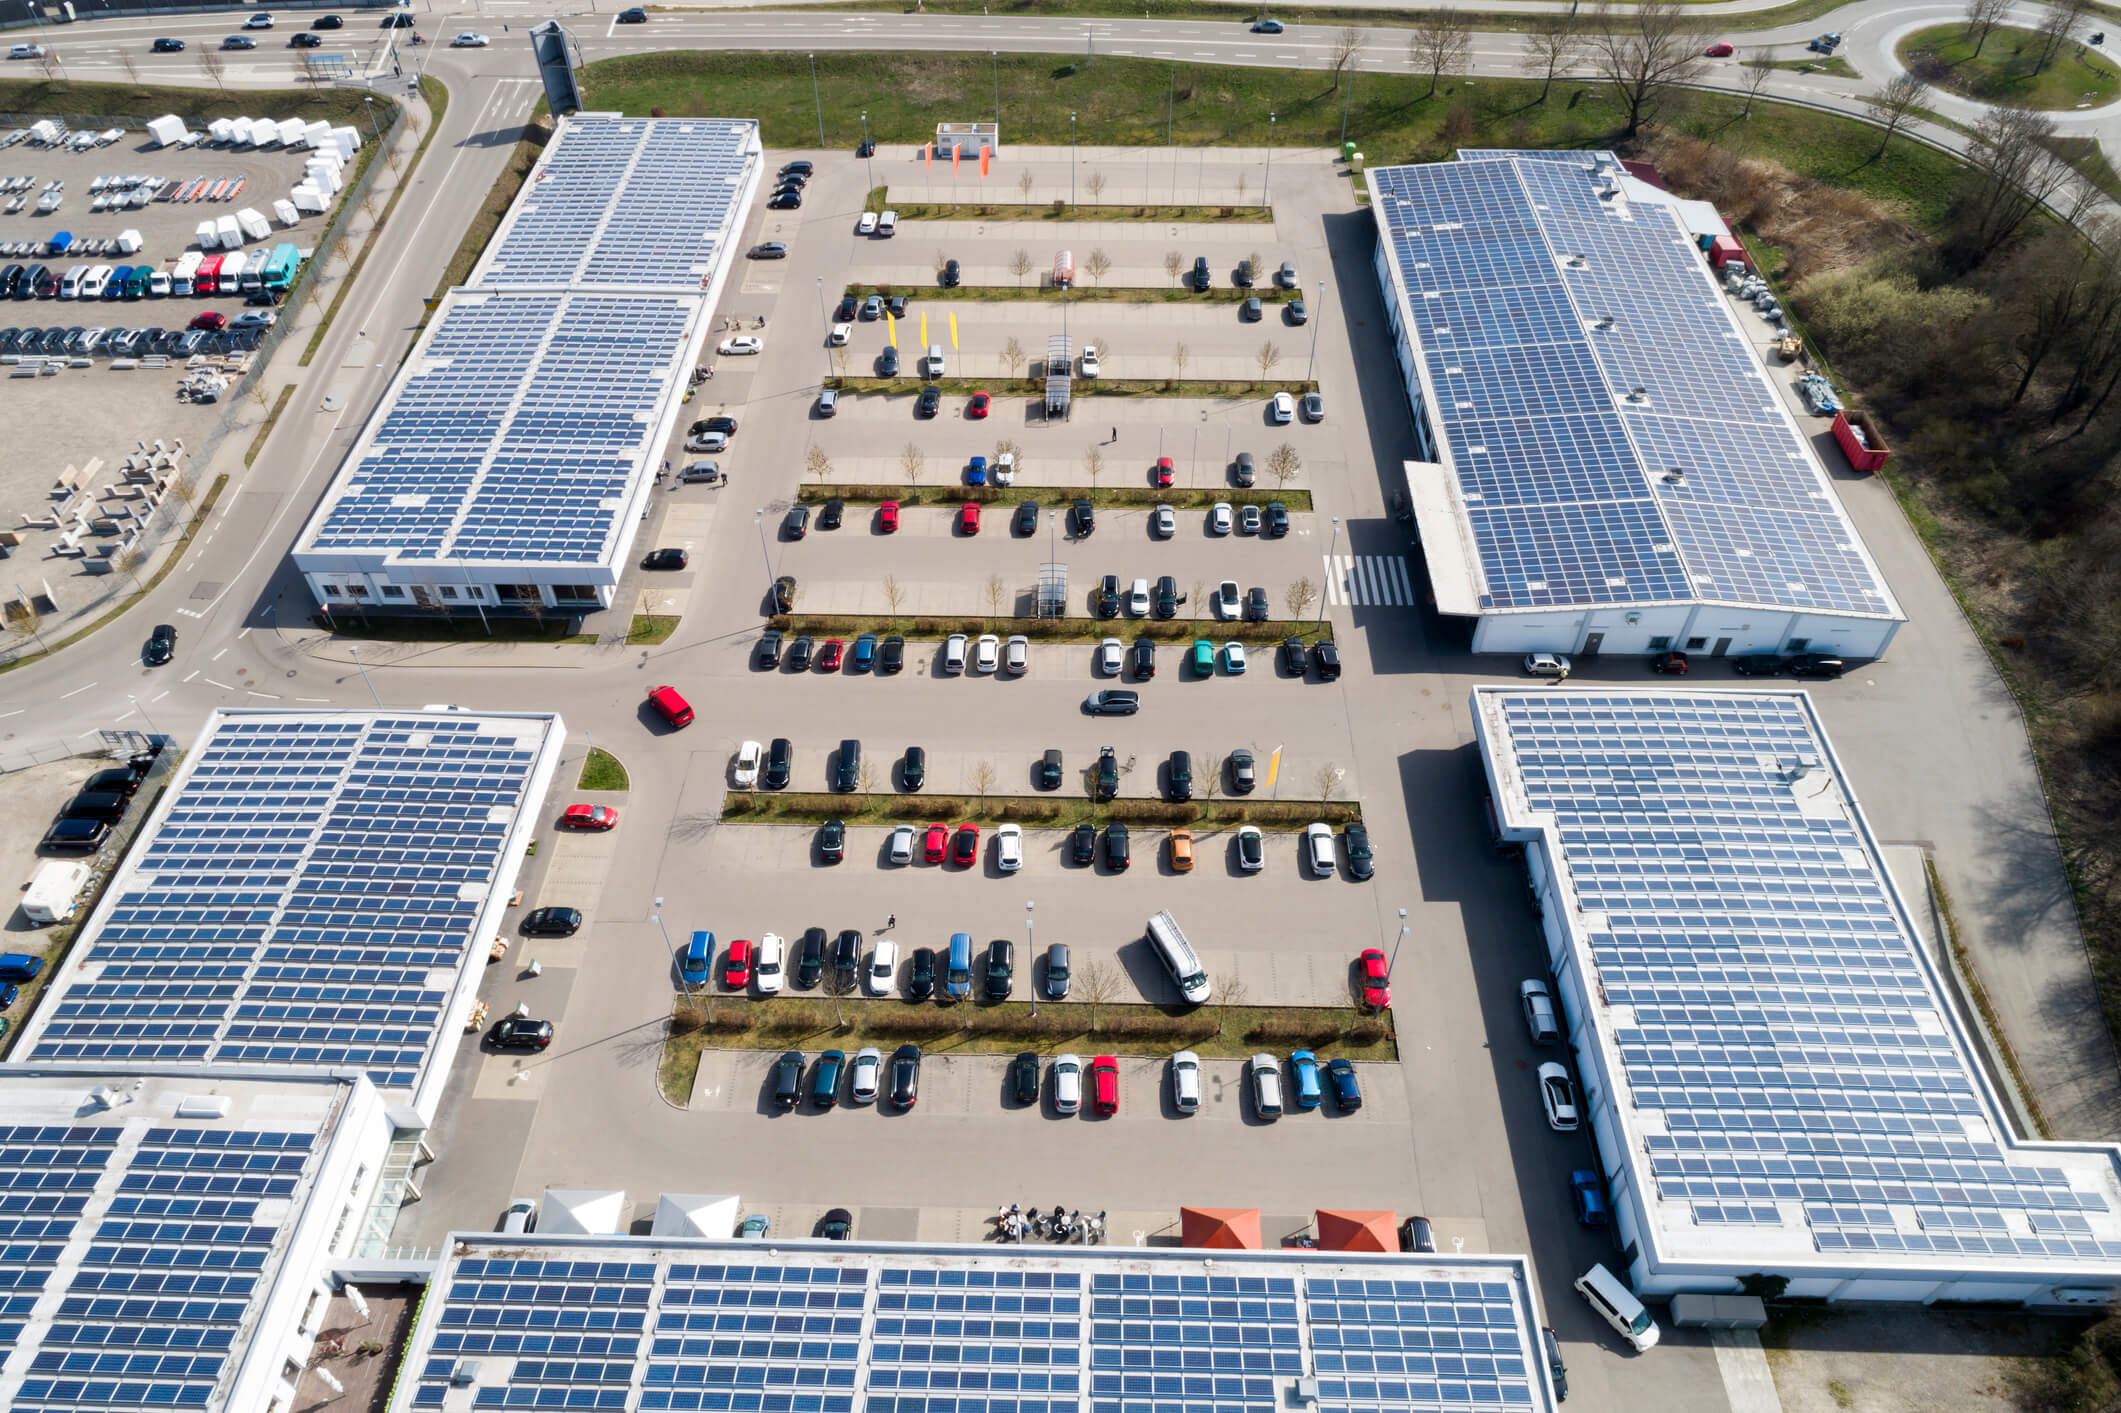 shopping mall with solar panels